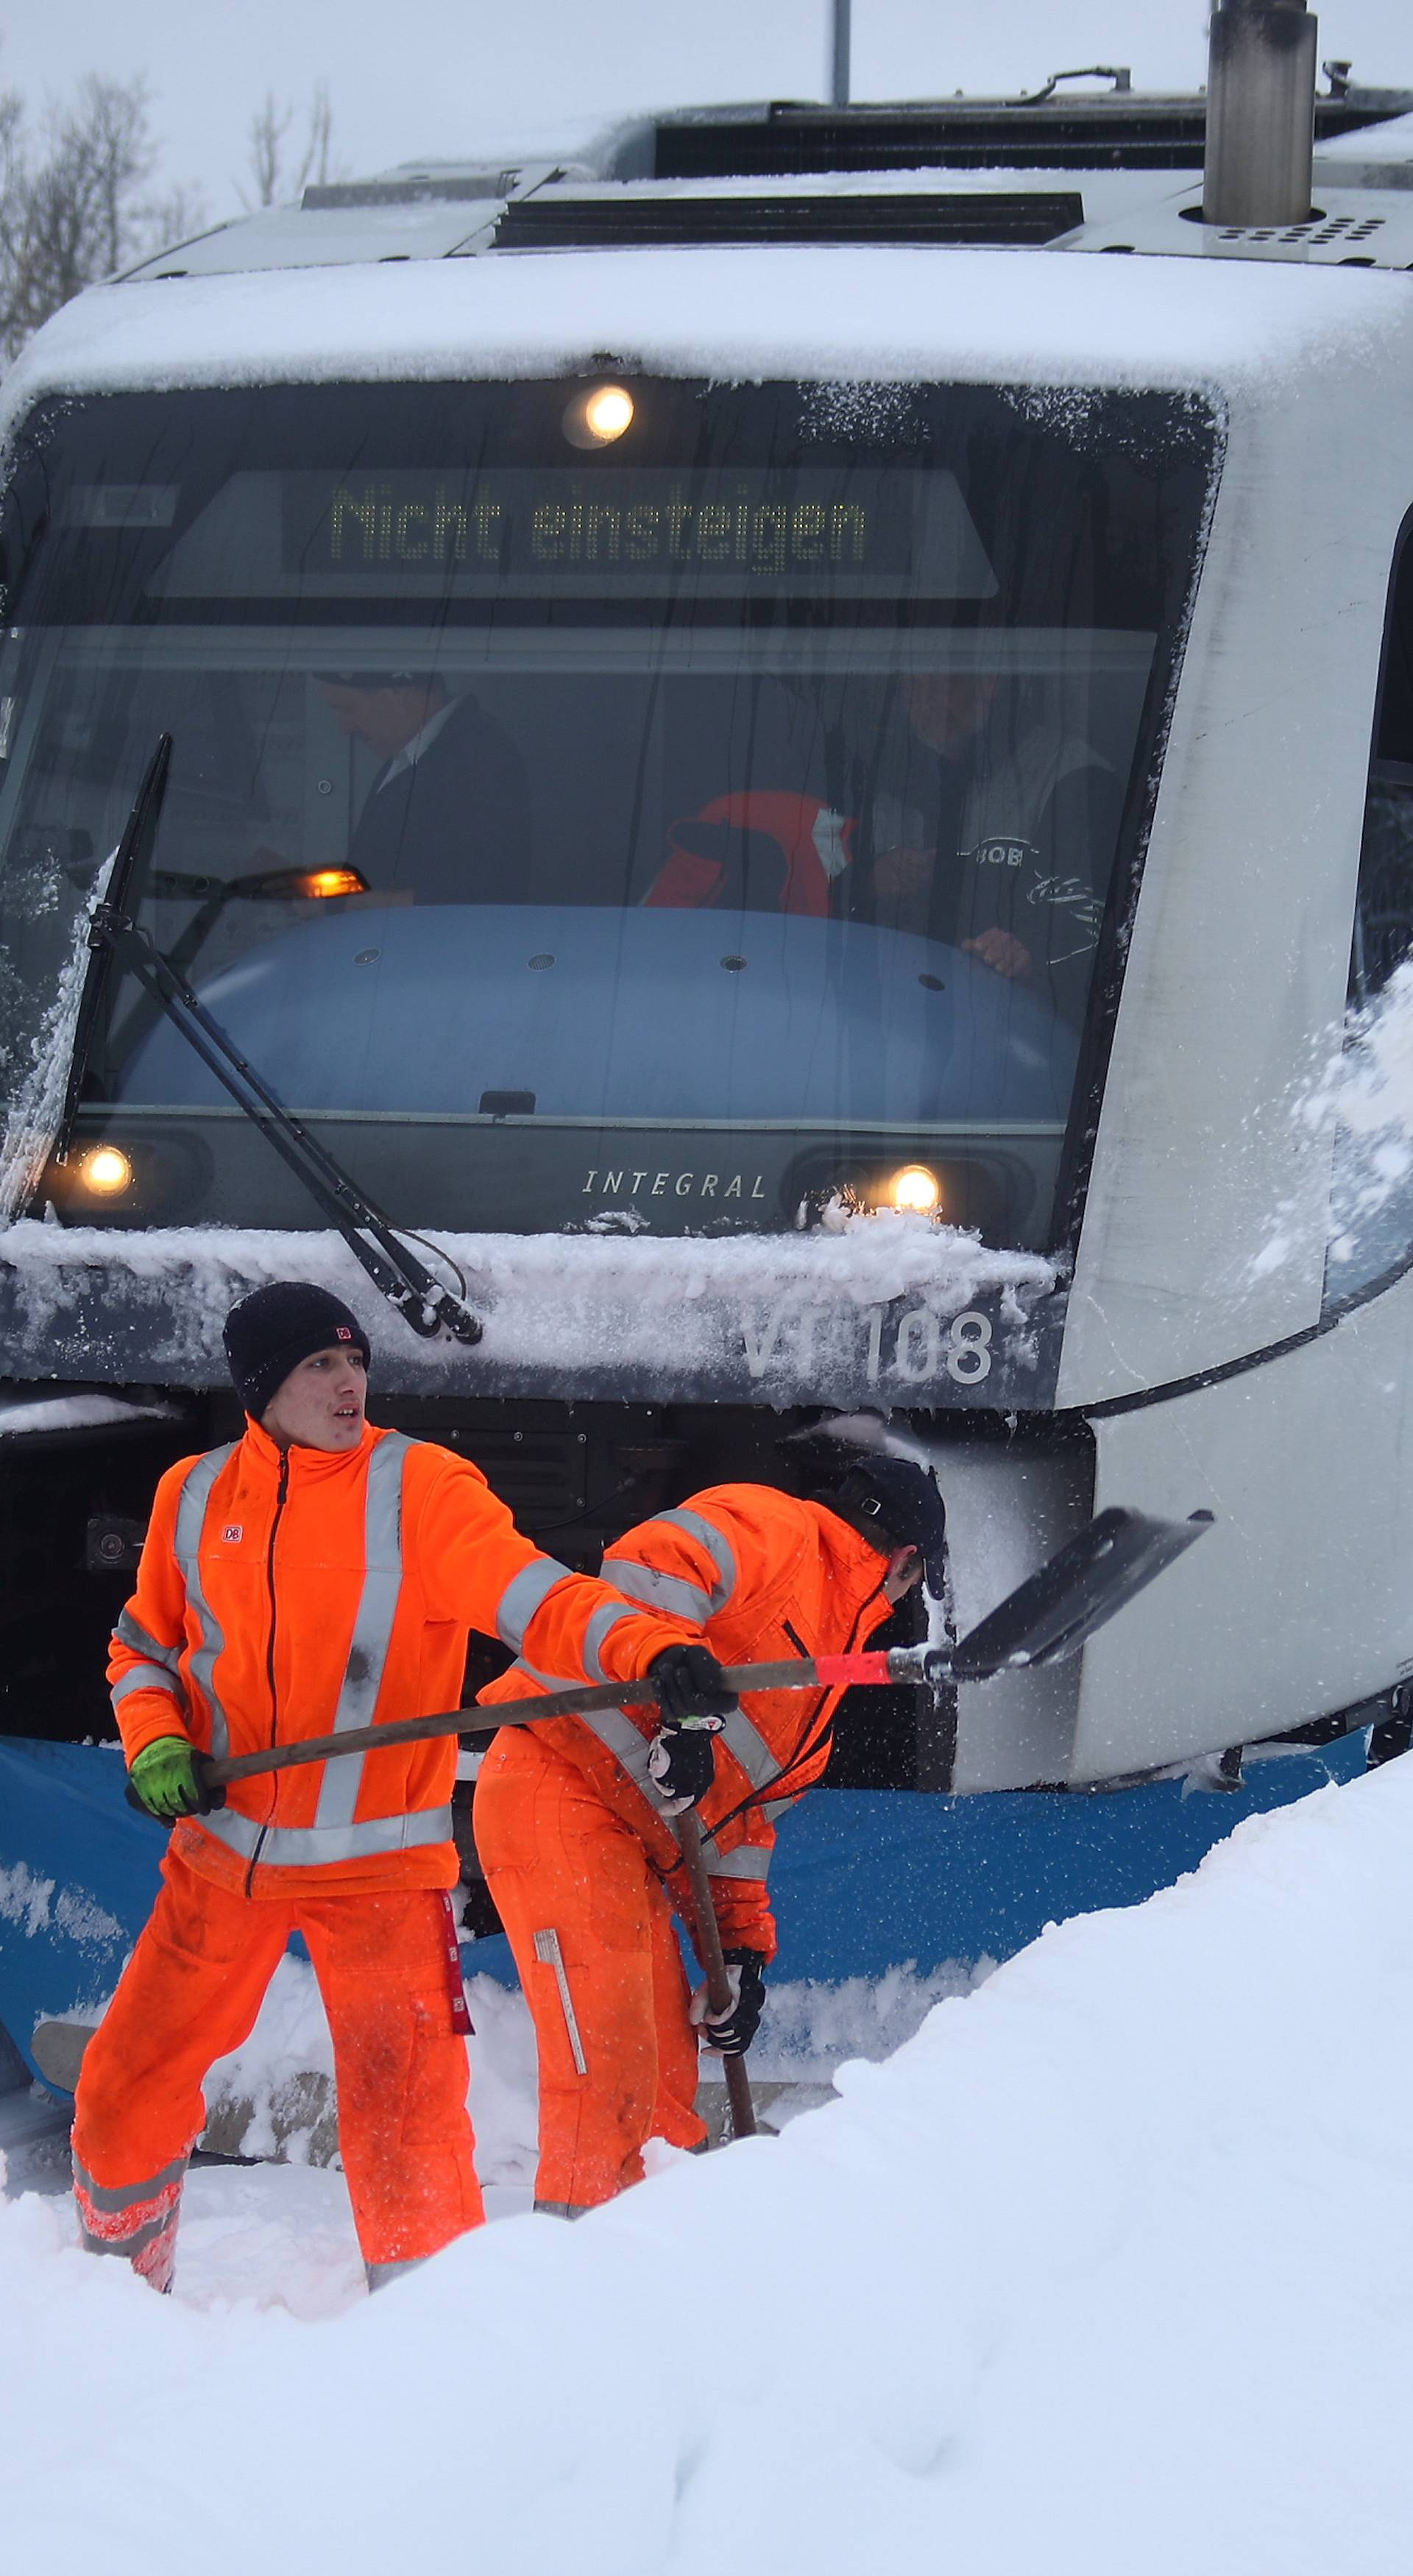 Workers try to clear rail tracks after heavy snowfalls in Schaftlach